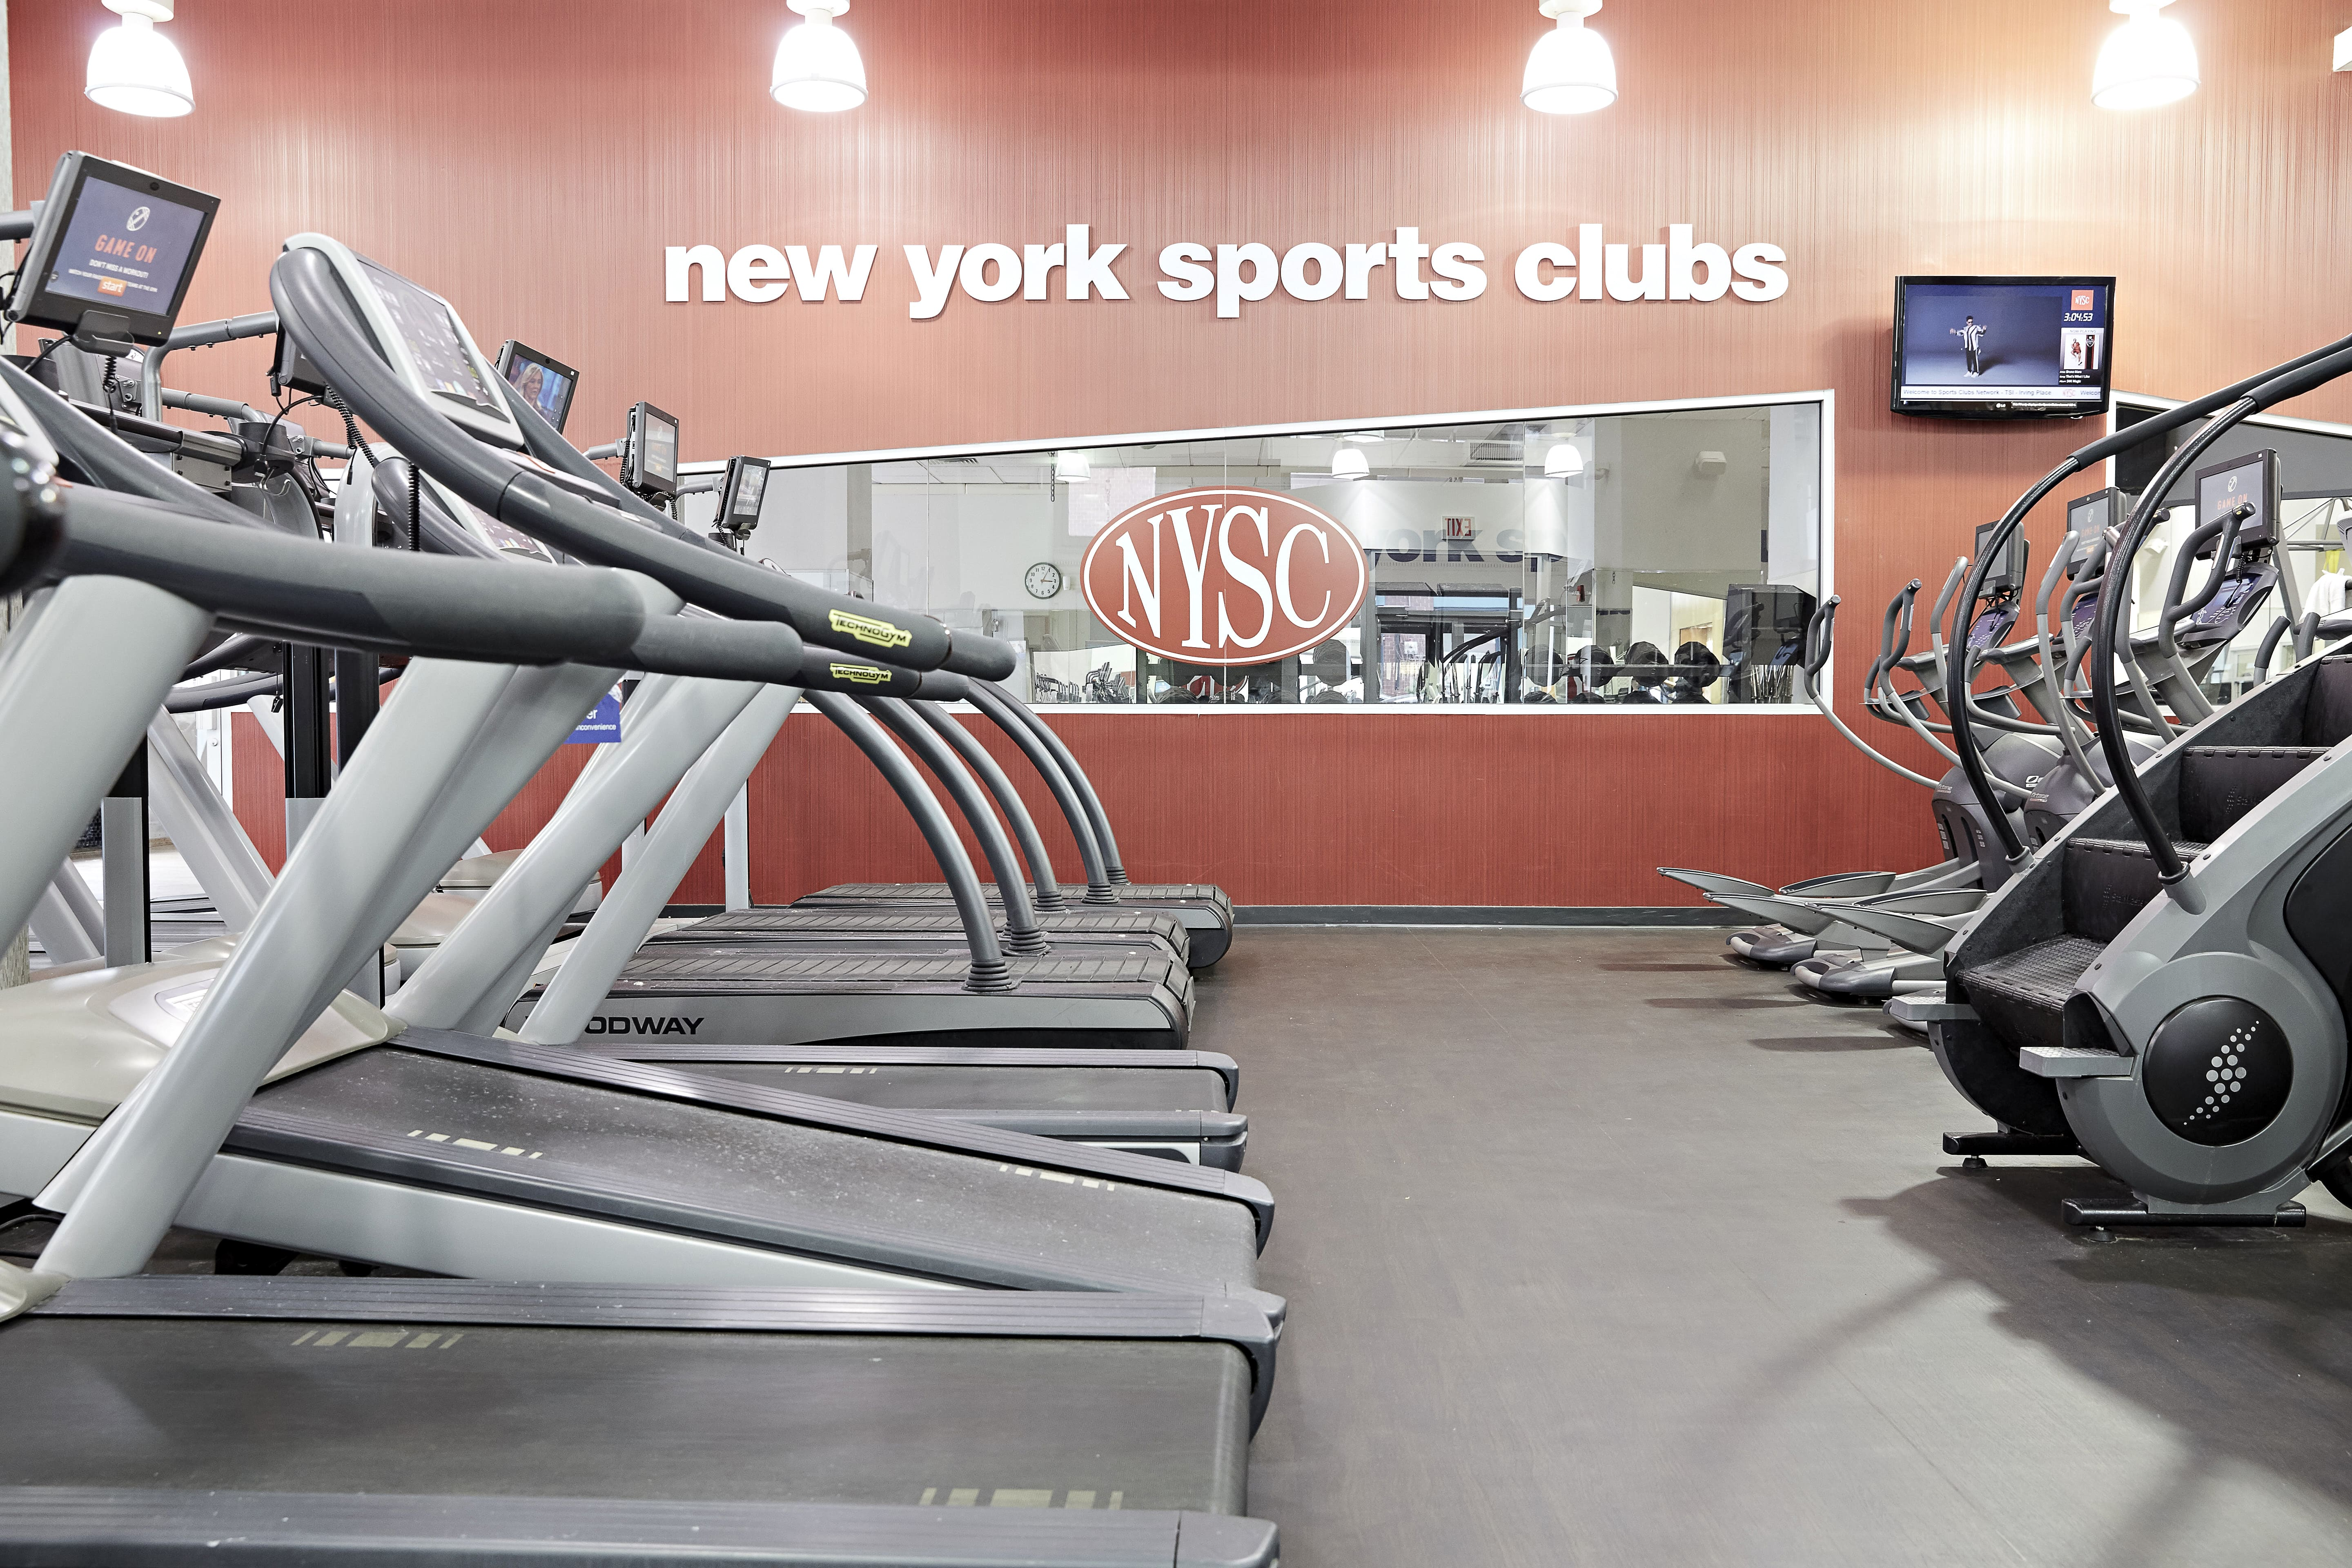 New York Sports Clubs image 6